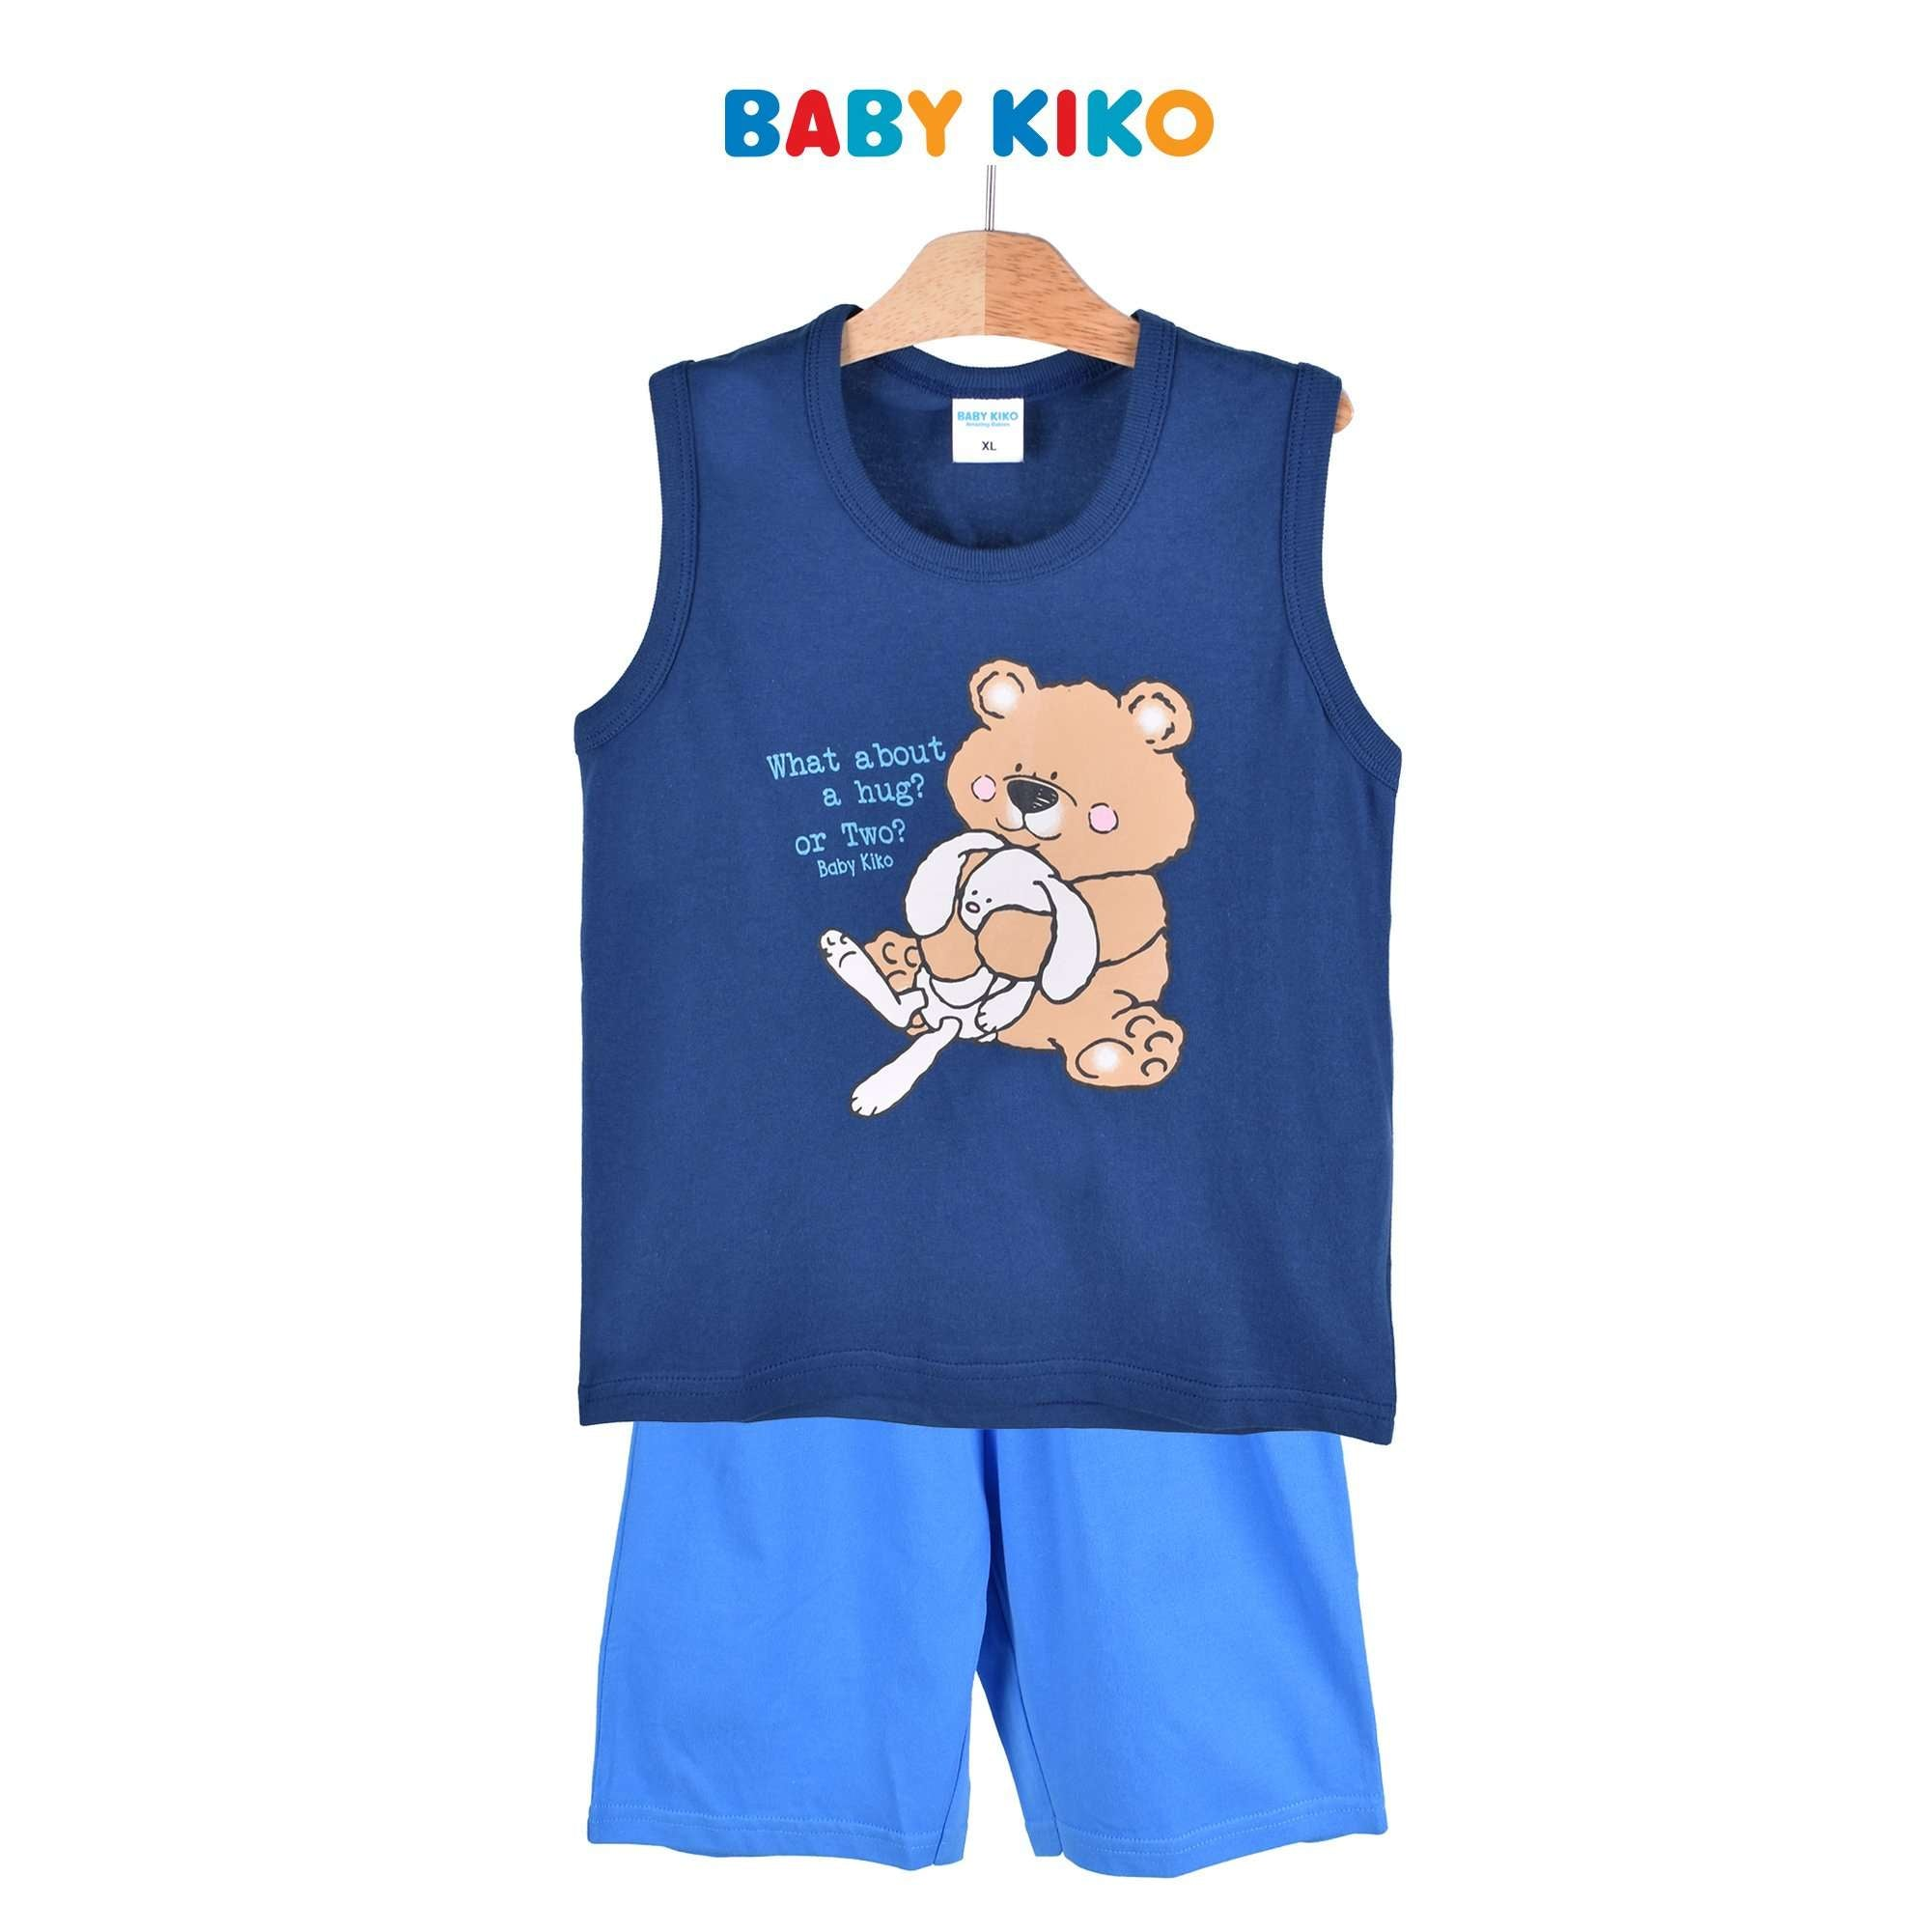 Baby KIKO Toddler Boy Sleeveless Bermuda - Black Navy 325141-401 : Buy Baby KIKO online at CMG.MY